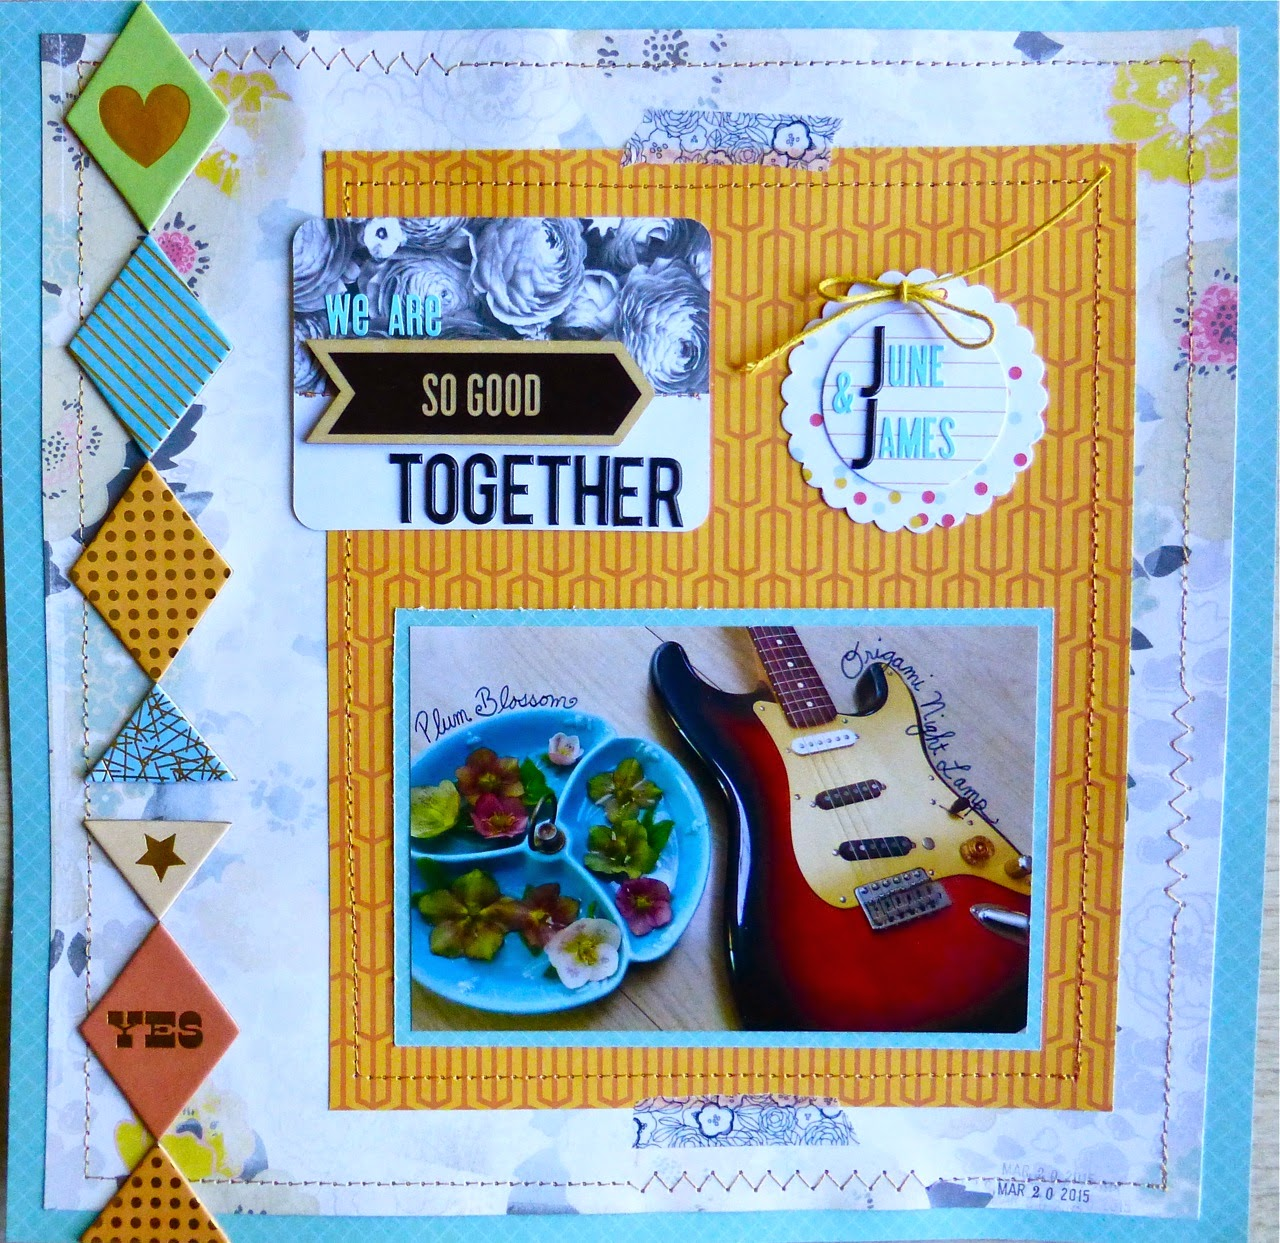 Studio Calico scrapbook layout, we are so good together, june and james, Studio Calico, patterned paper, chipboard, wood veneer, washi tape, journaling card, tag